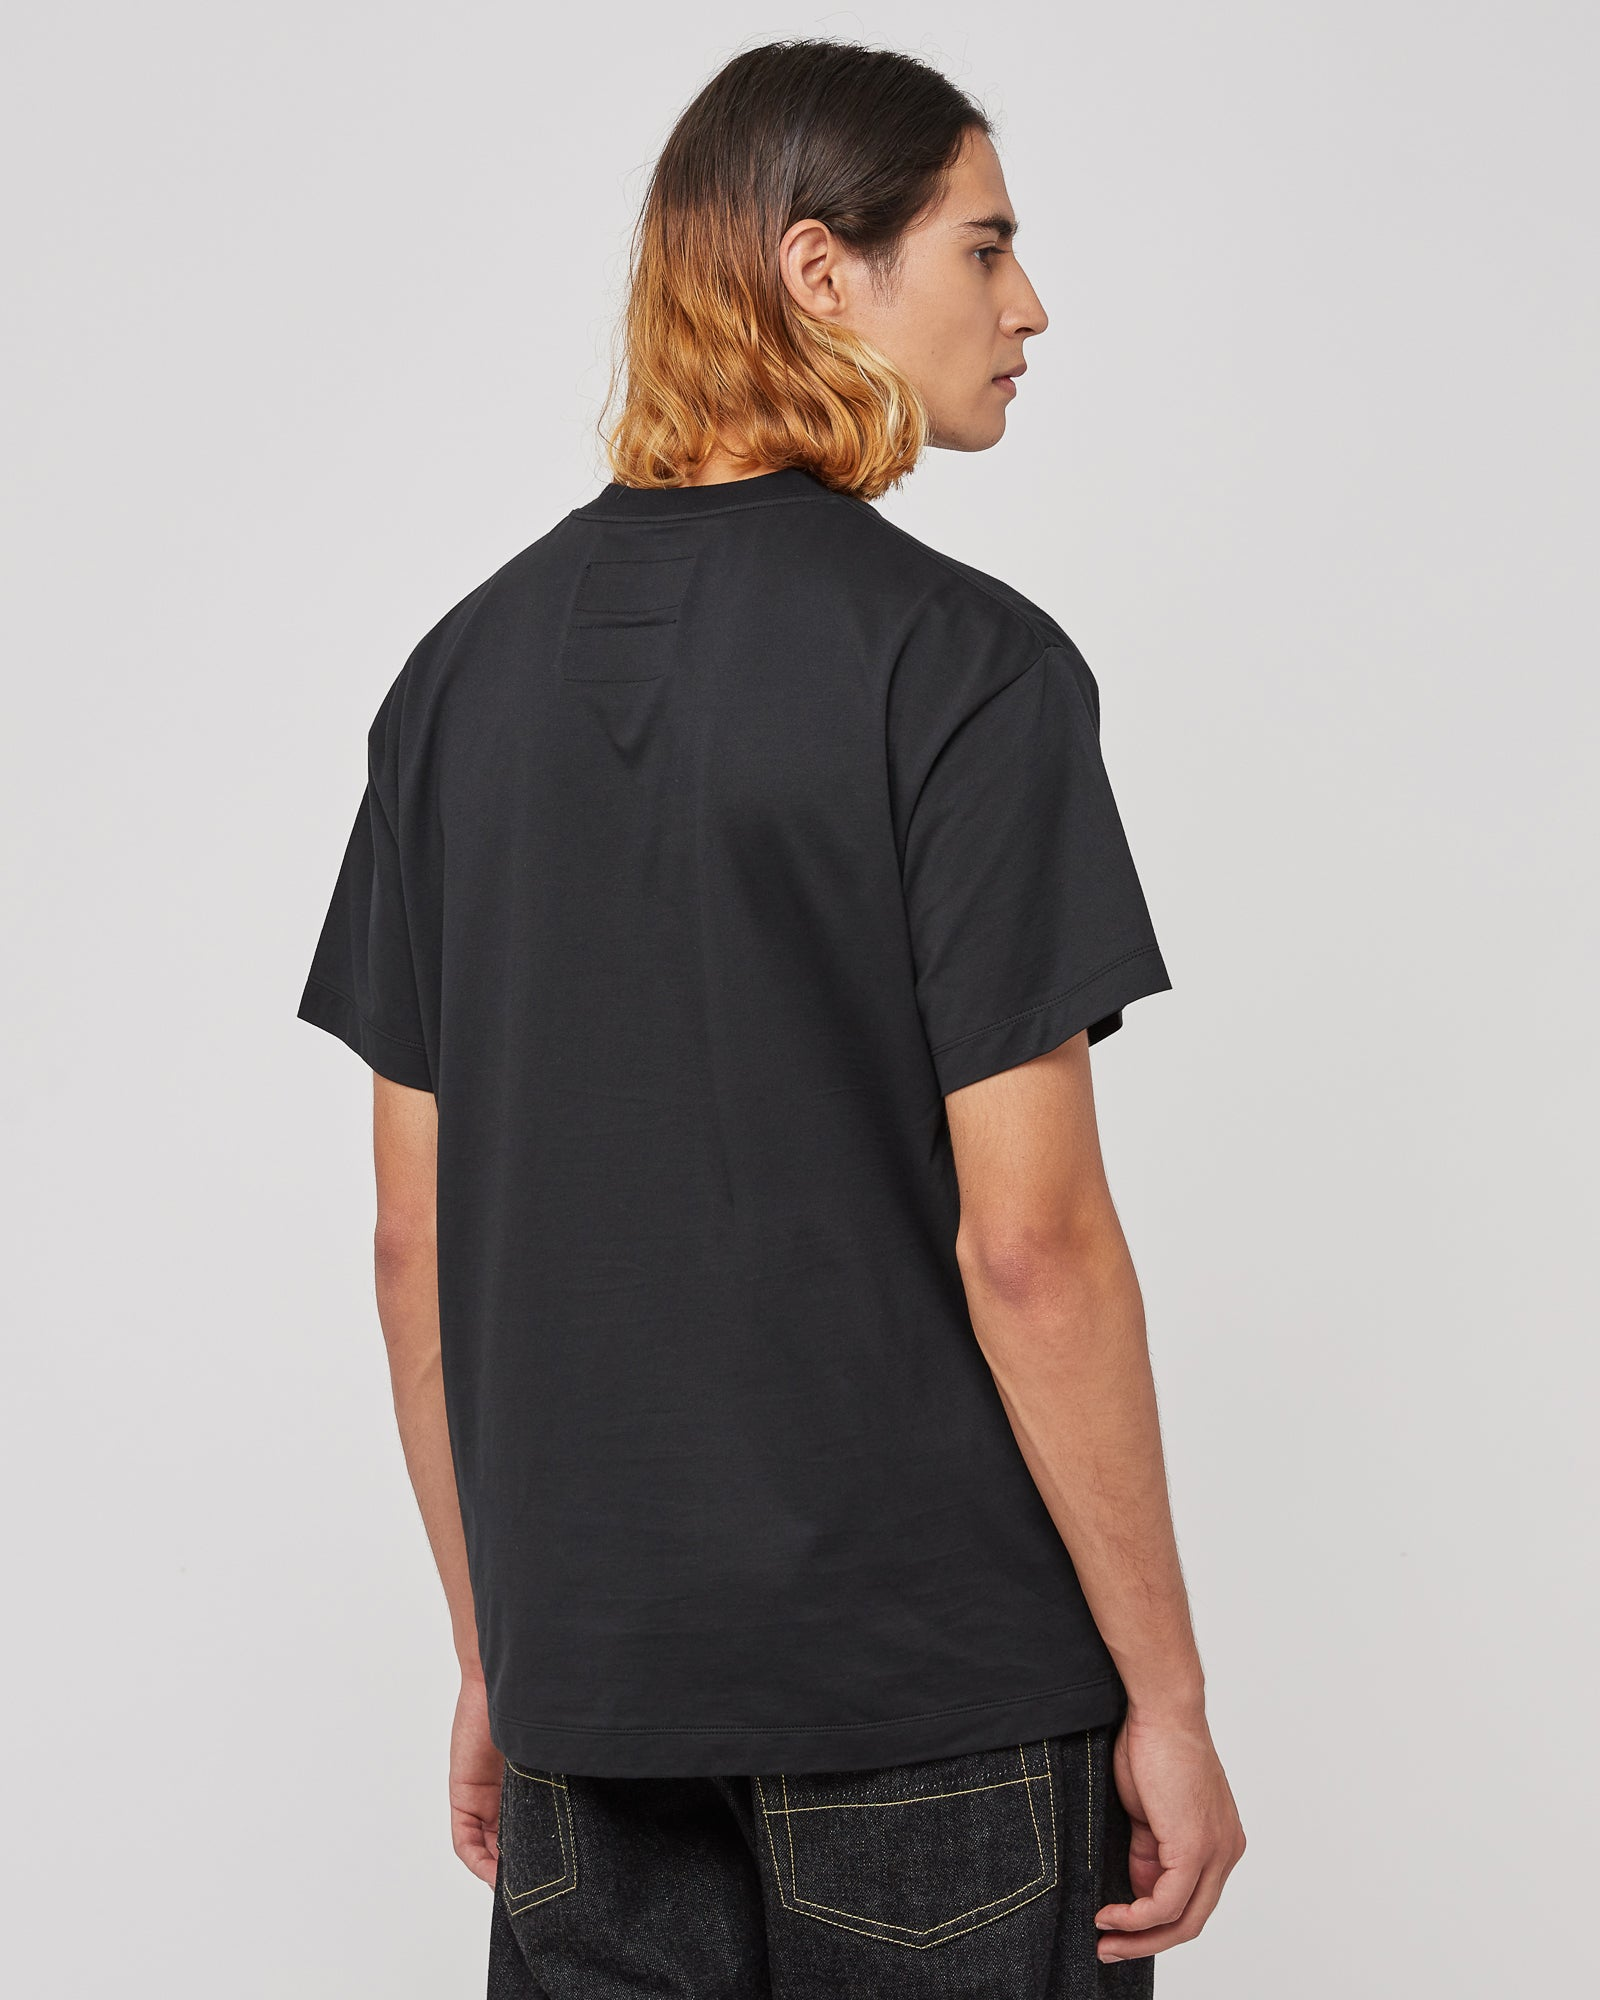 Organic Graphic T-Shirt in Black